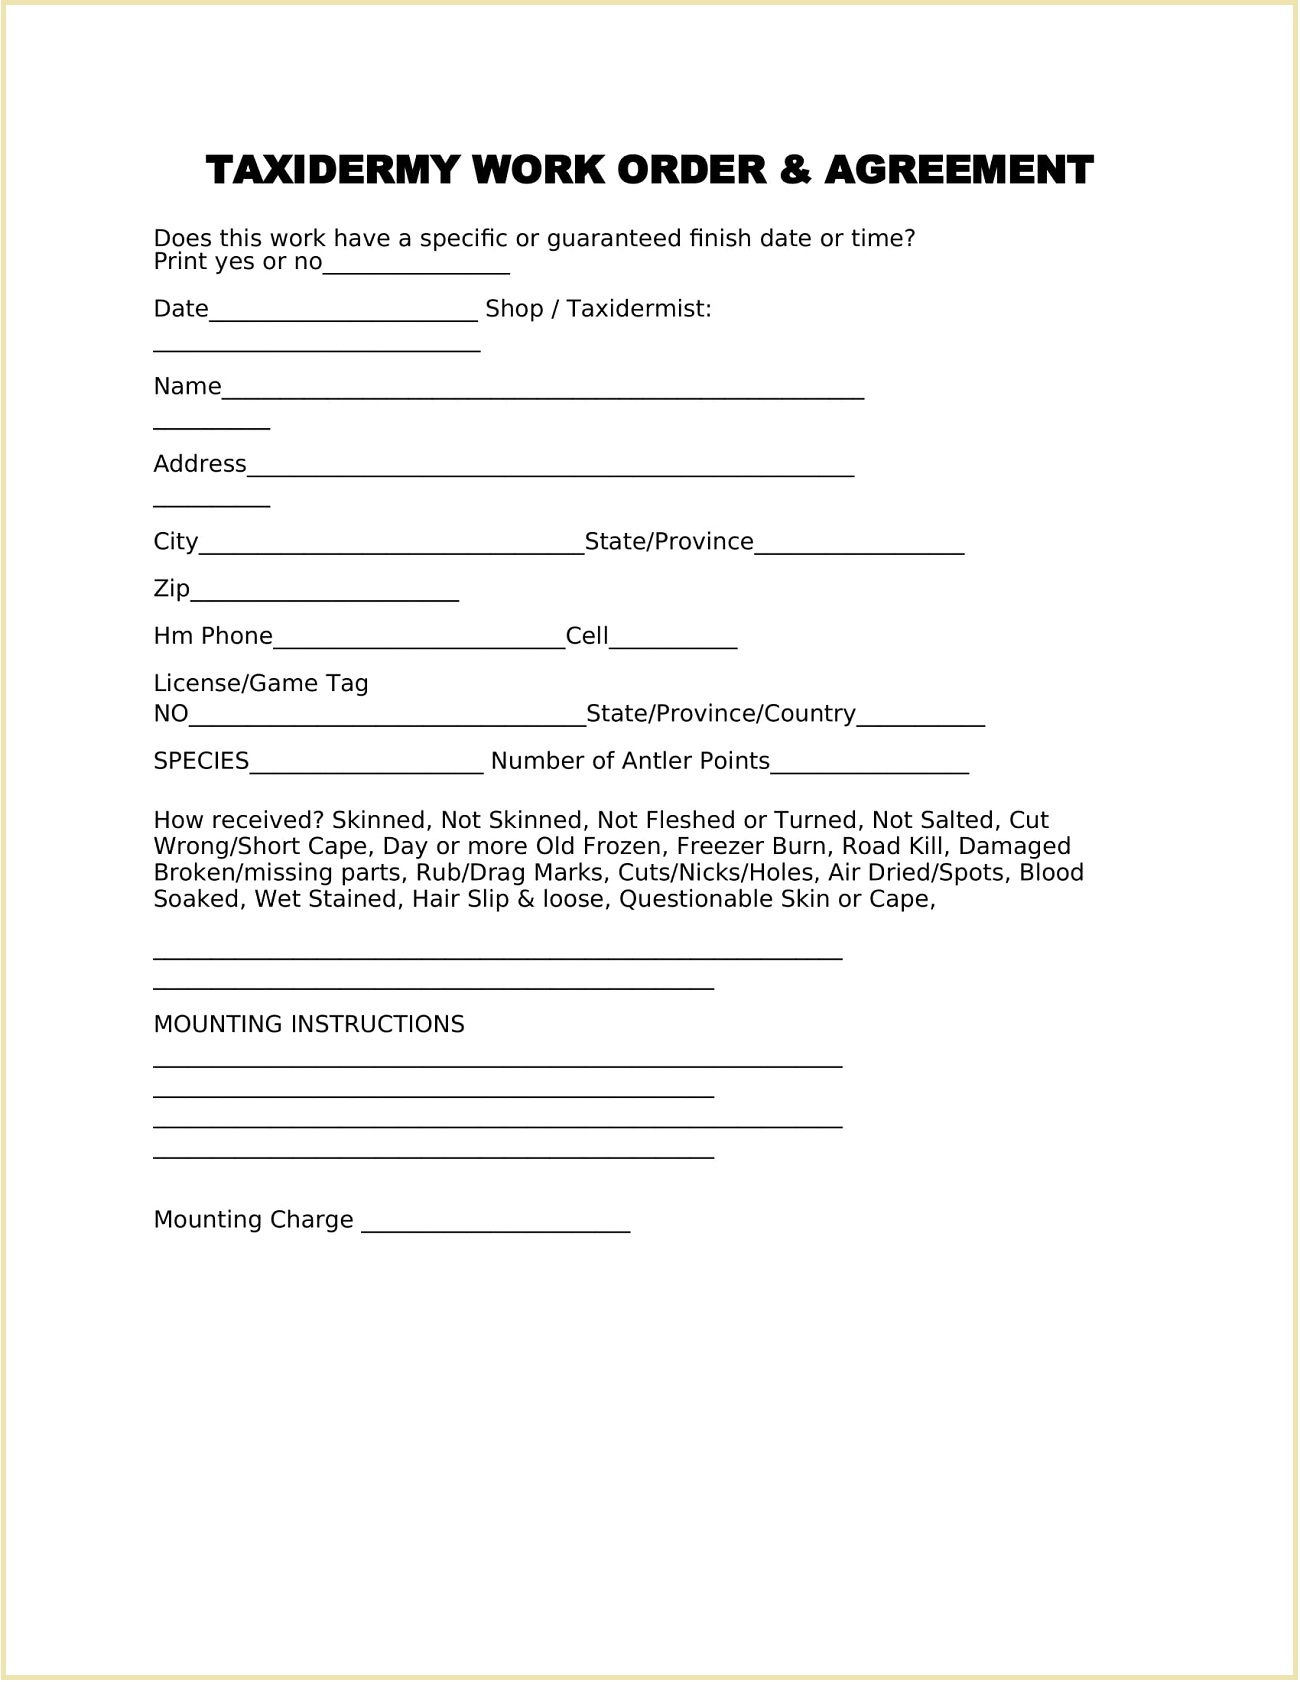 Taxidermy Work Order Form Template Word